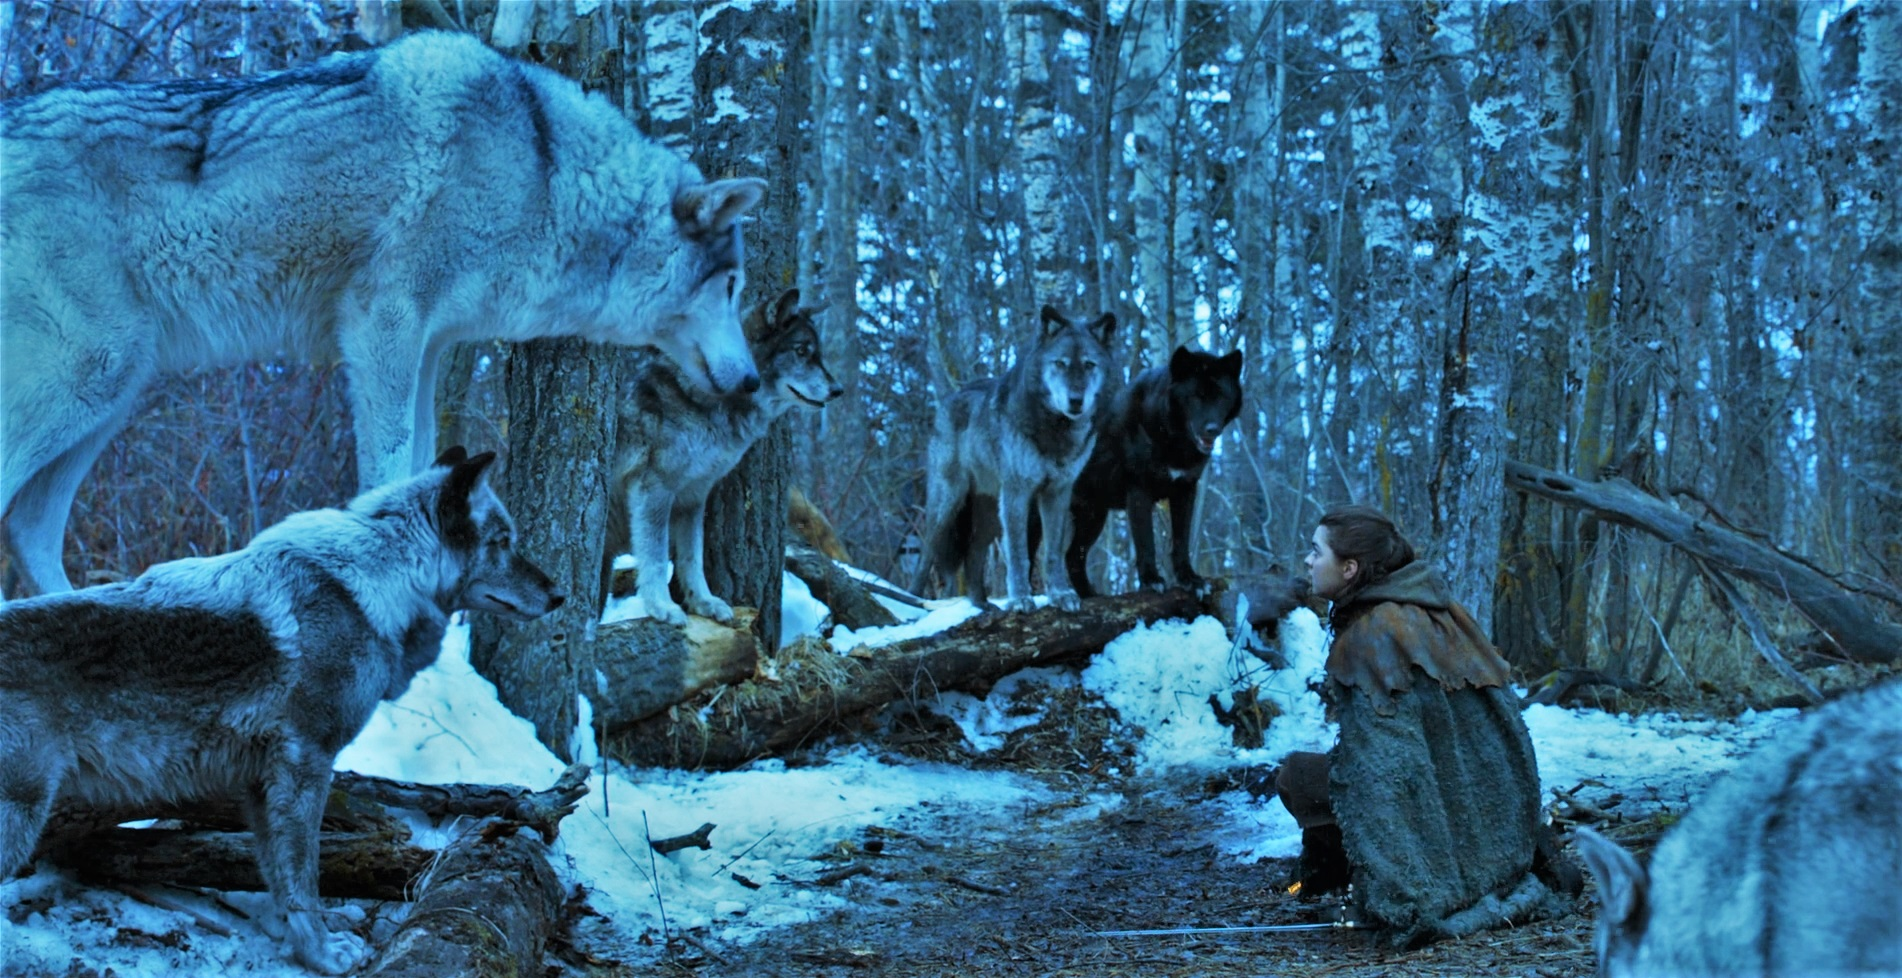 From the Maester's Desk - Endgame: A Time for Wolves